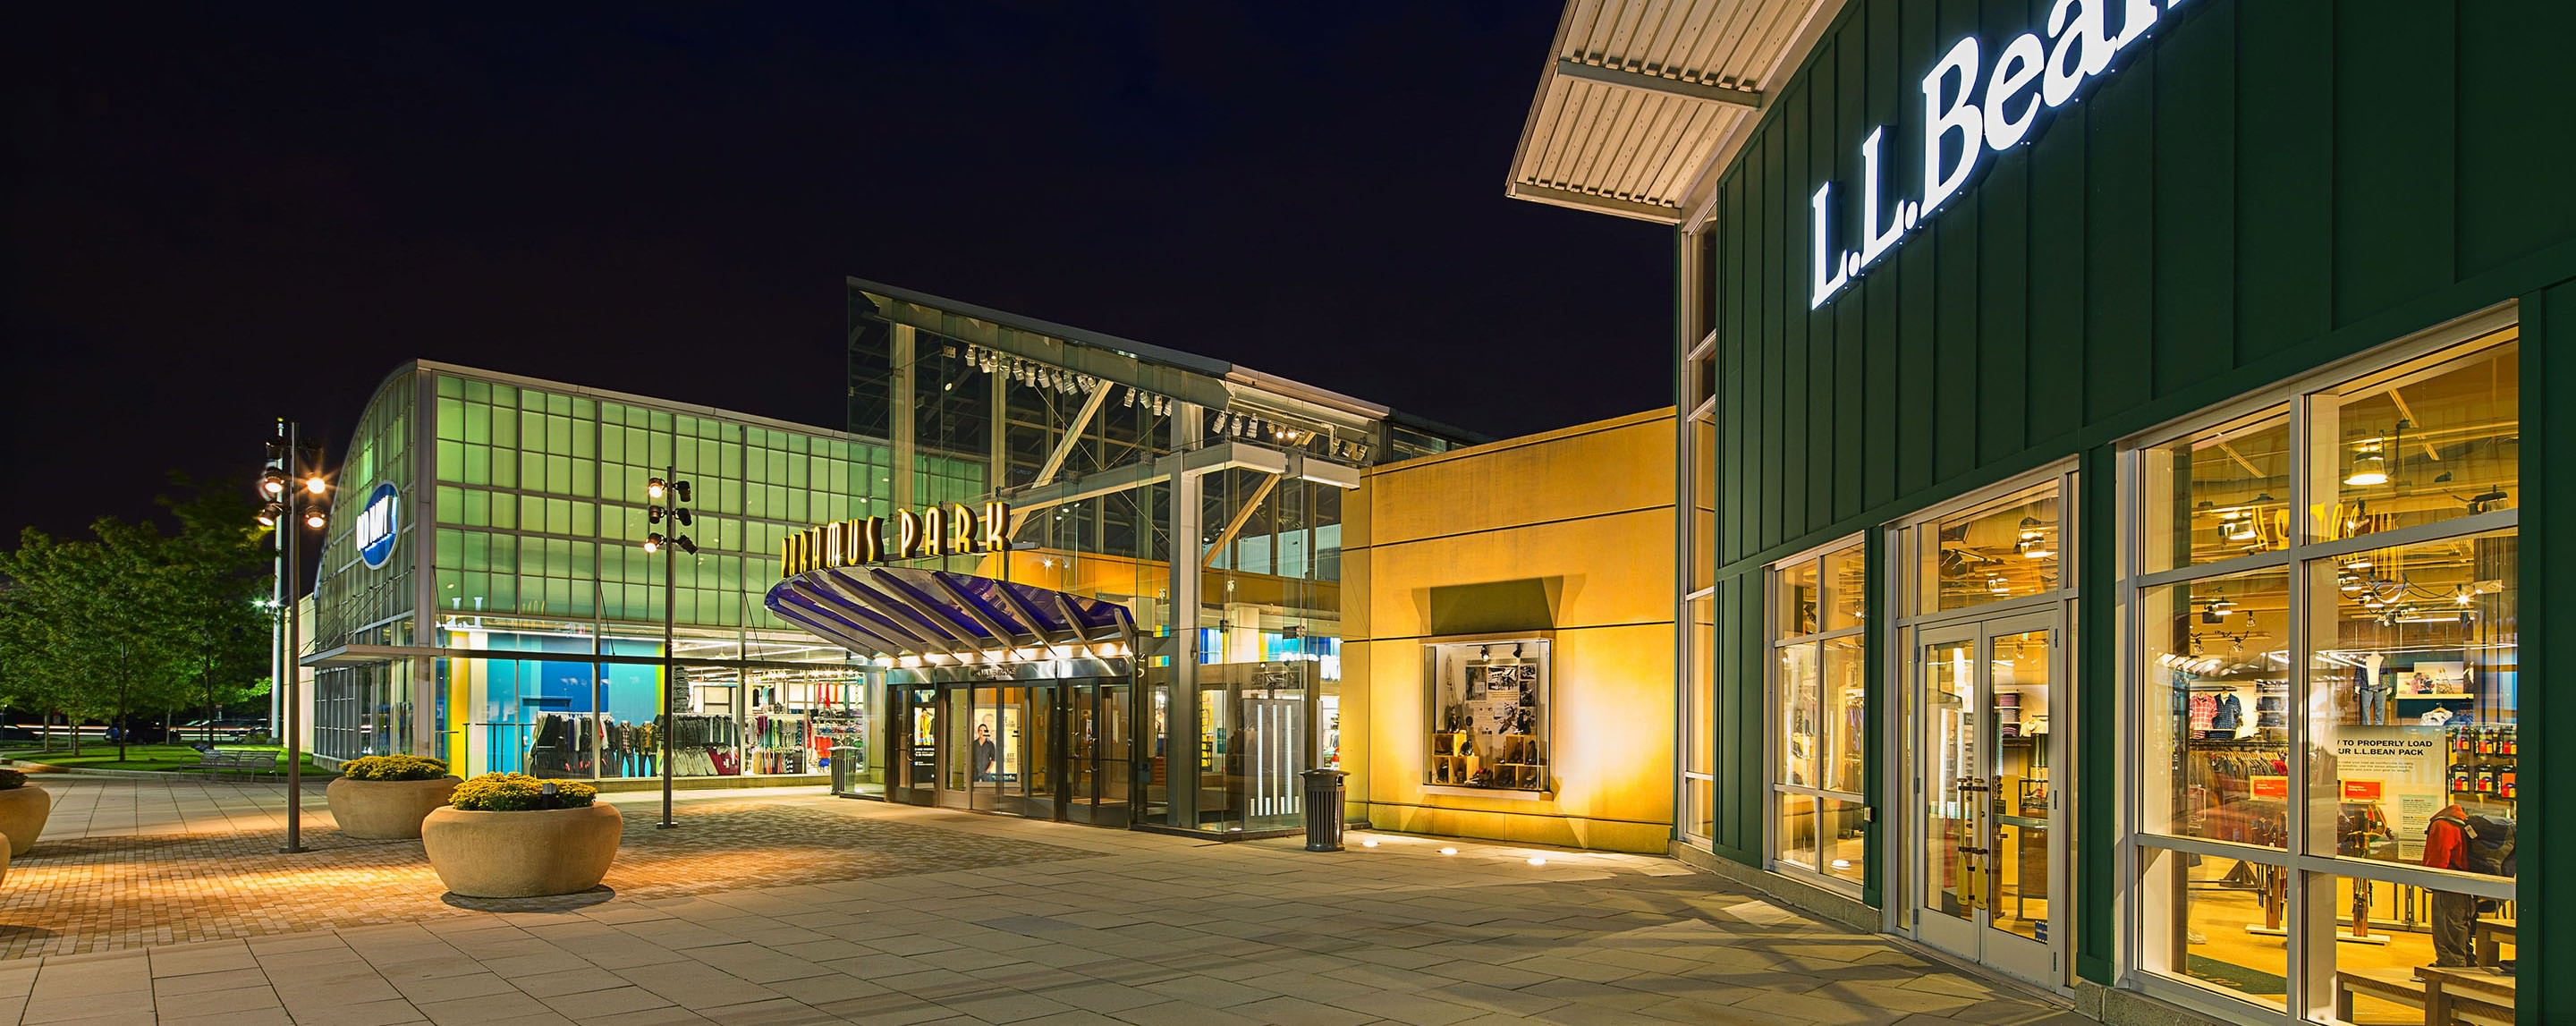 At night, an exterior entrance and other storefronts at Paramus Park are lit up with outdoor lighting